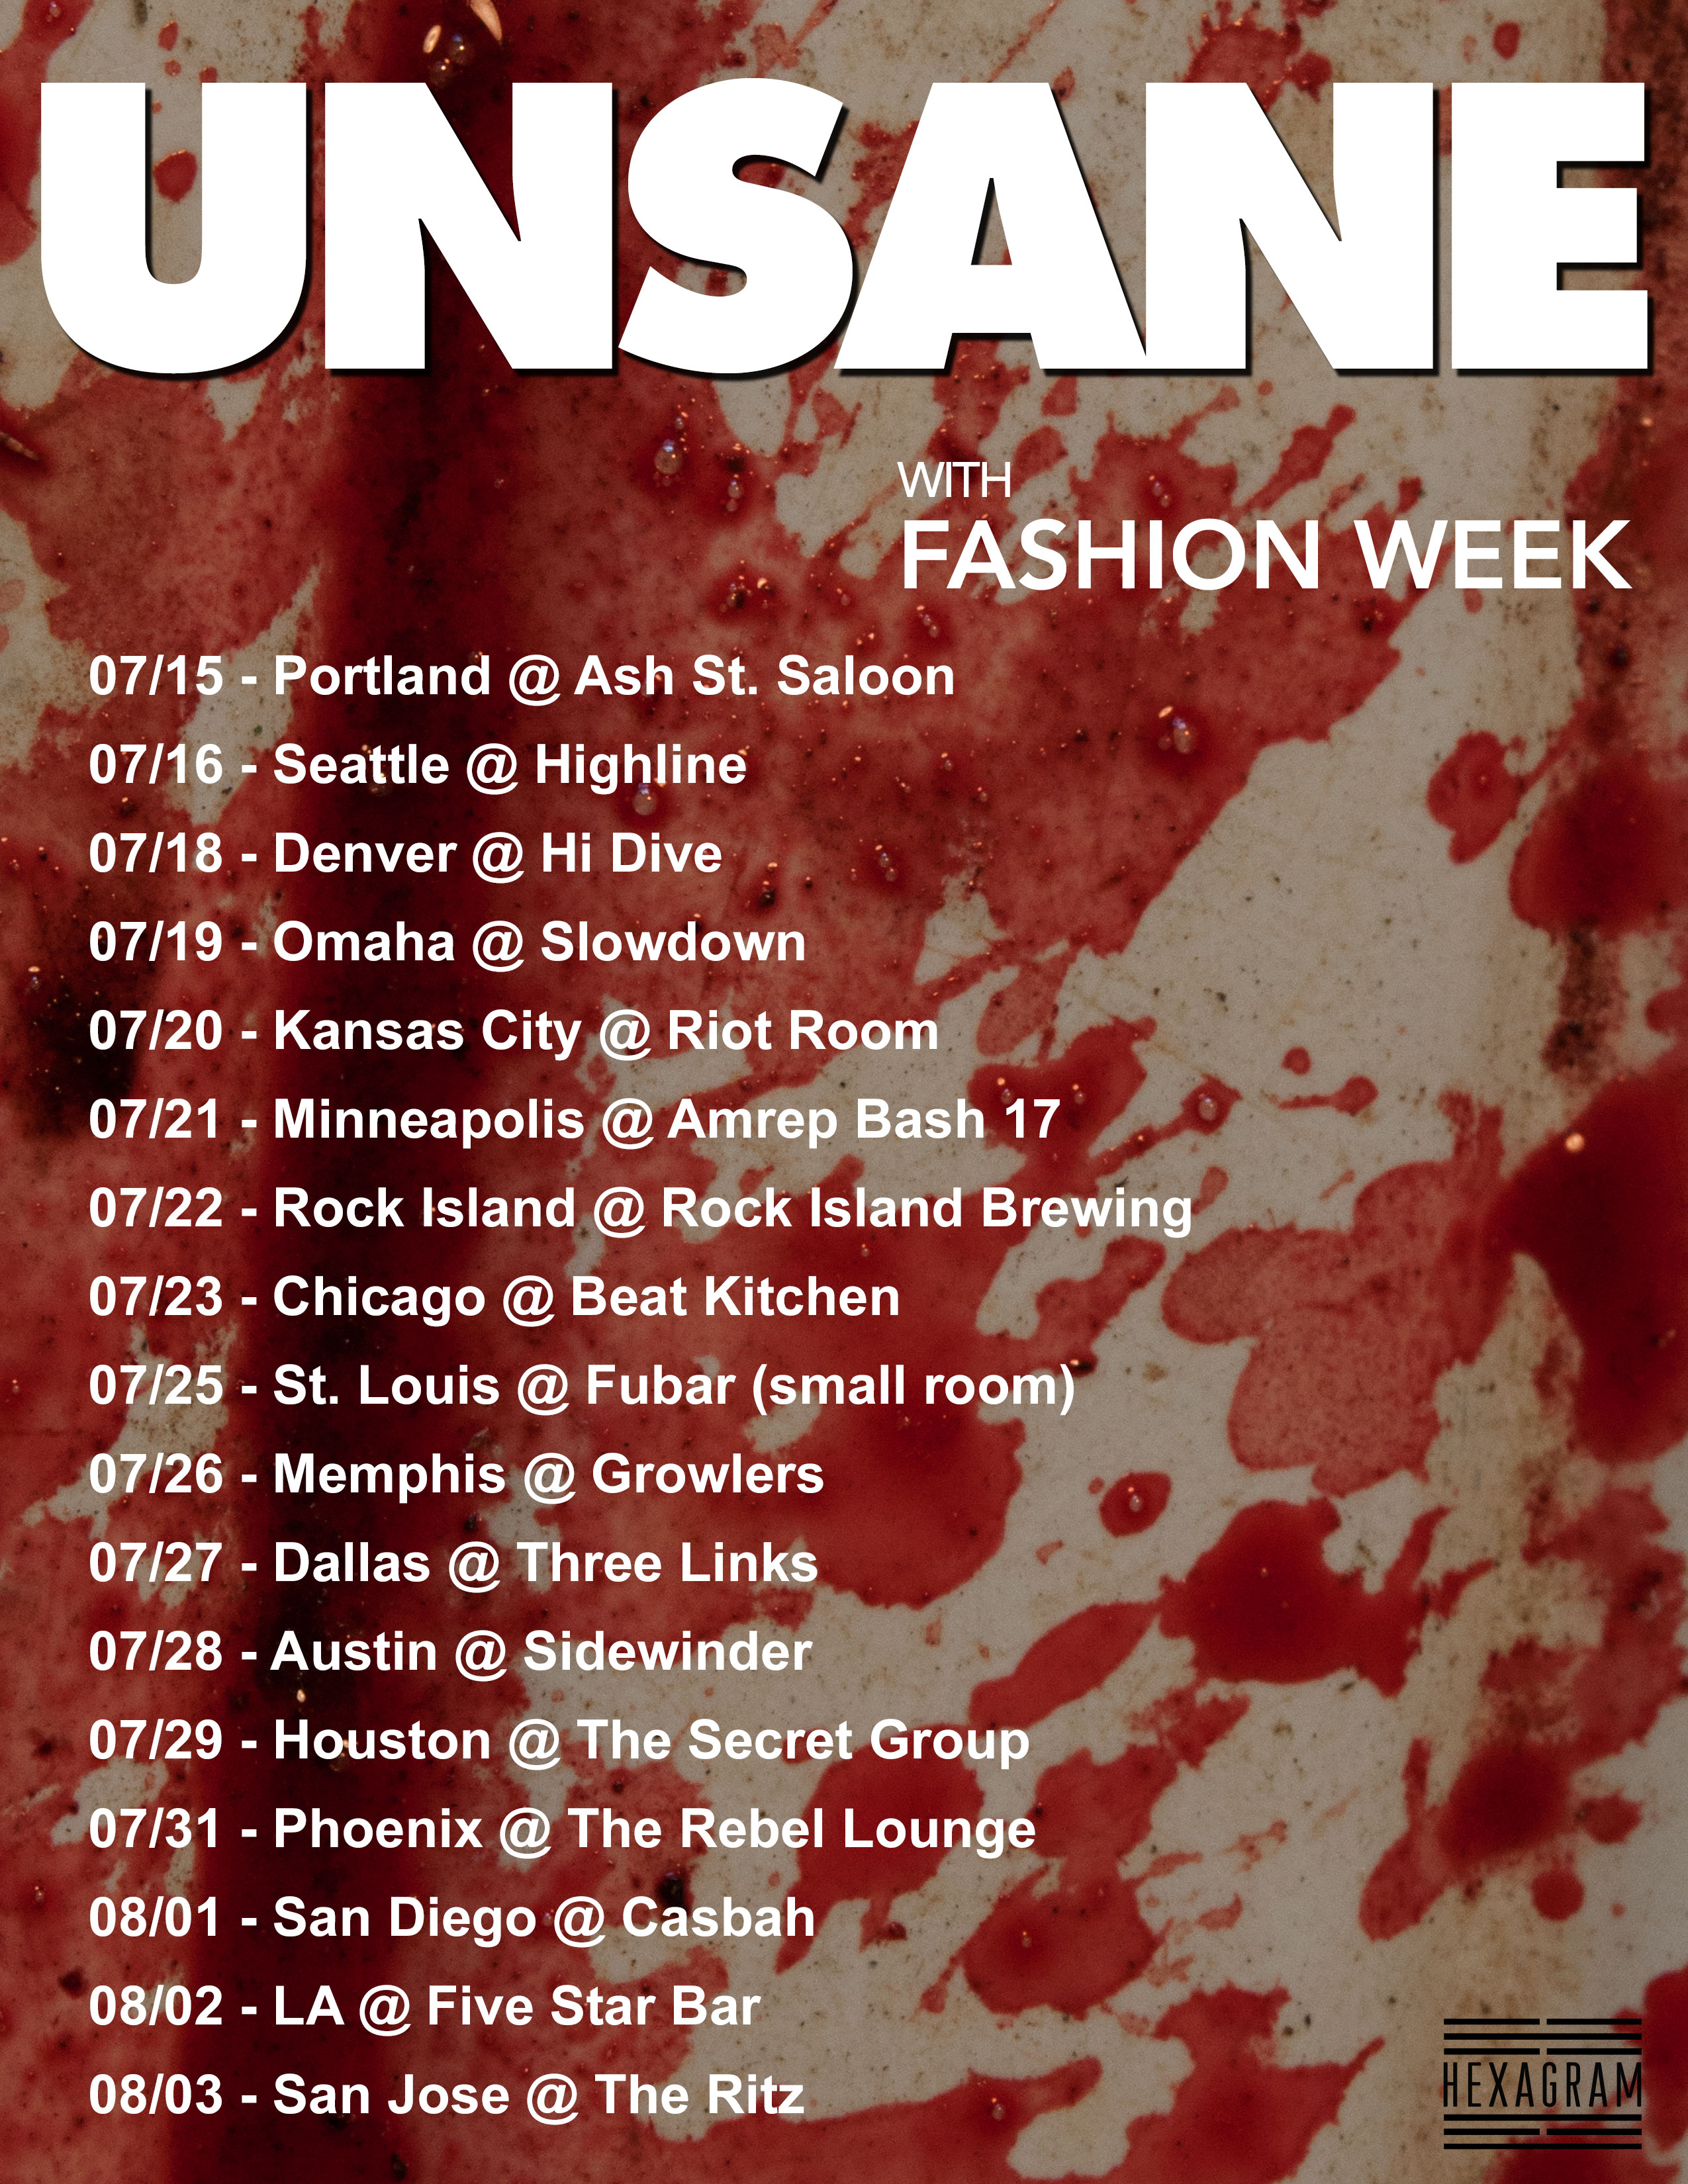 Unsane legendary noise rock trio to release eighth lp via booked around the bands performance at amrep bash 17 in minneapolis with fashion week providing support for the trek additional tour dates through malvernweather Choice Image